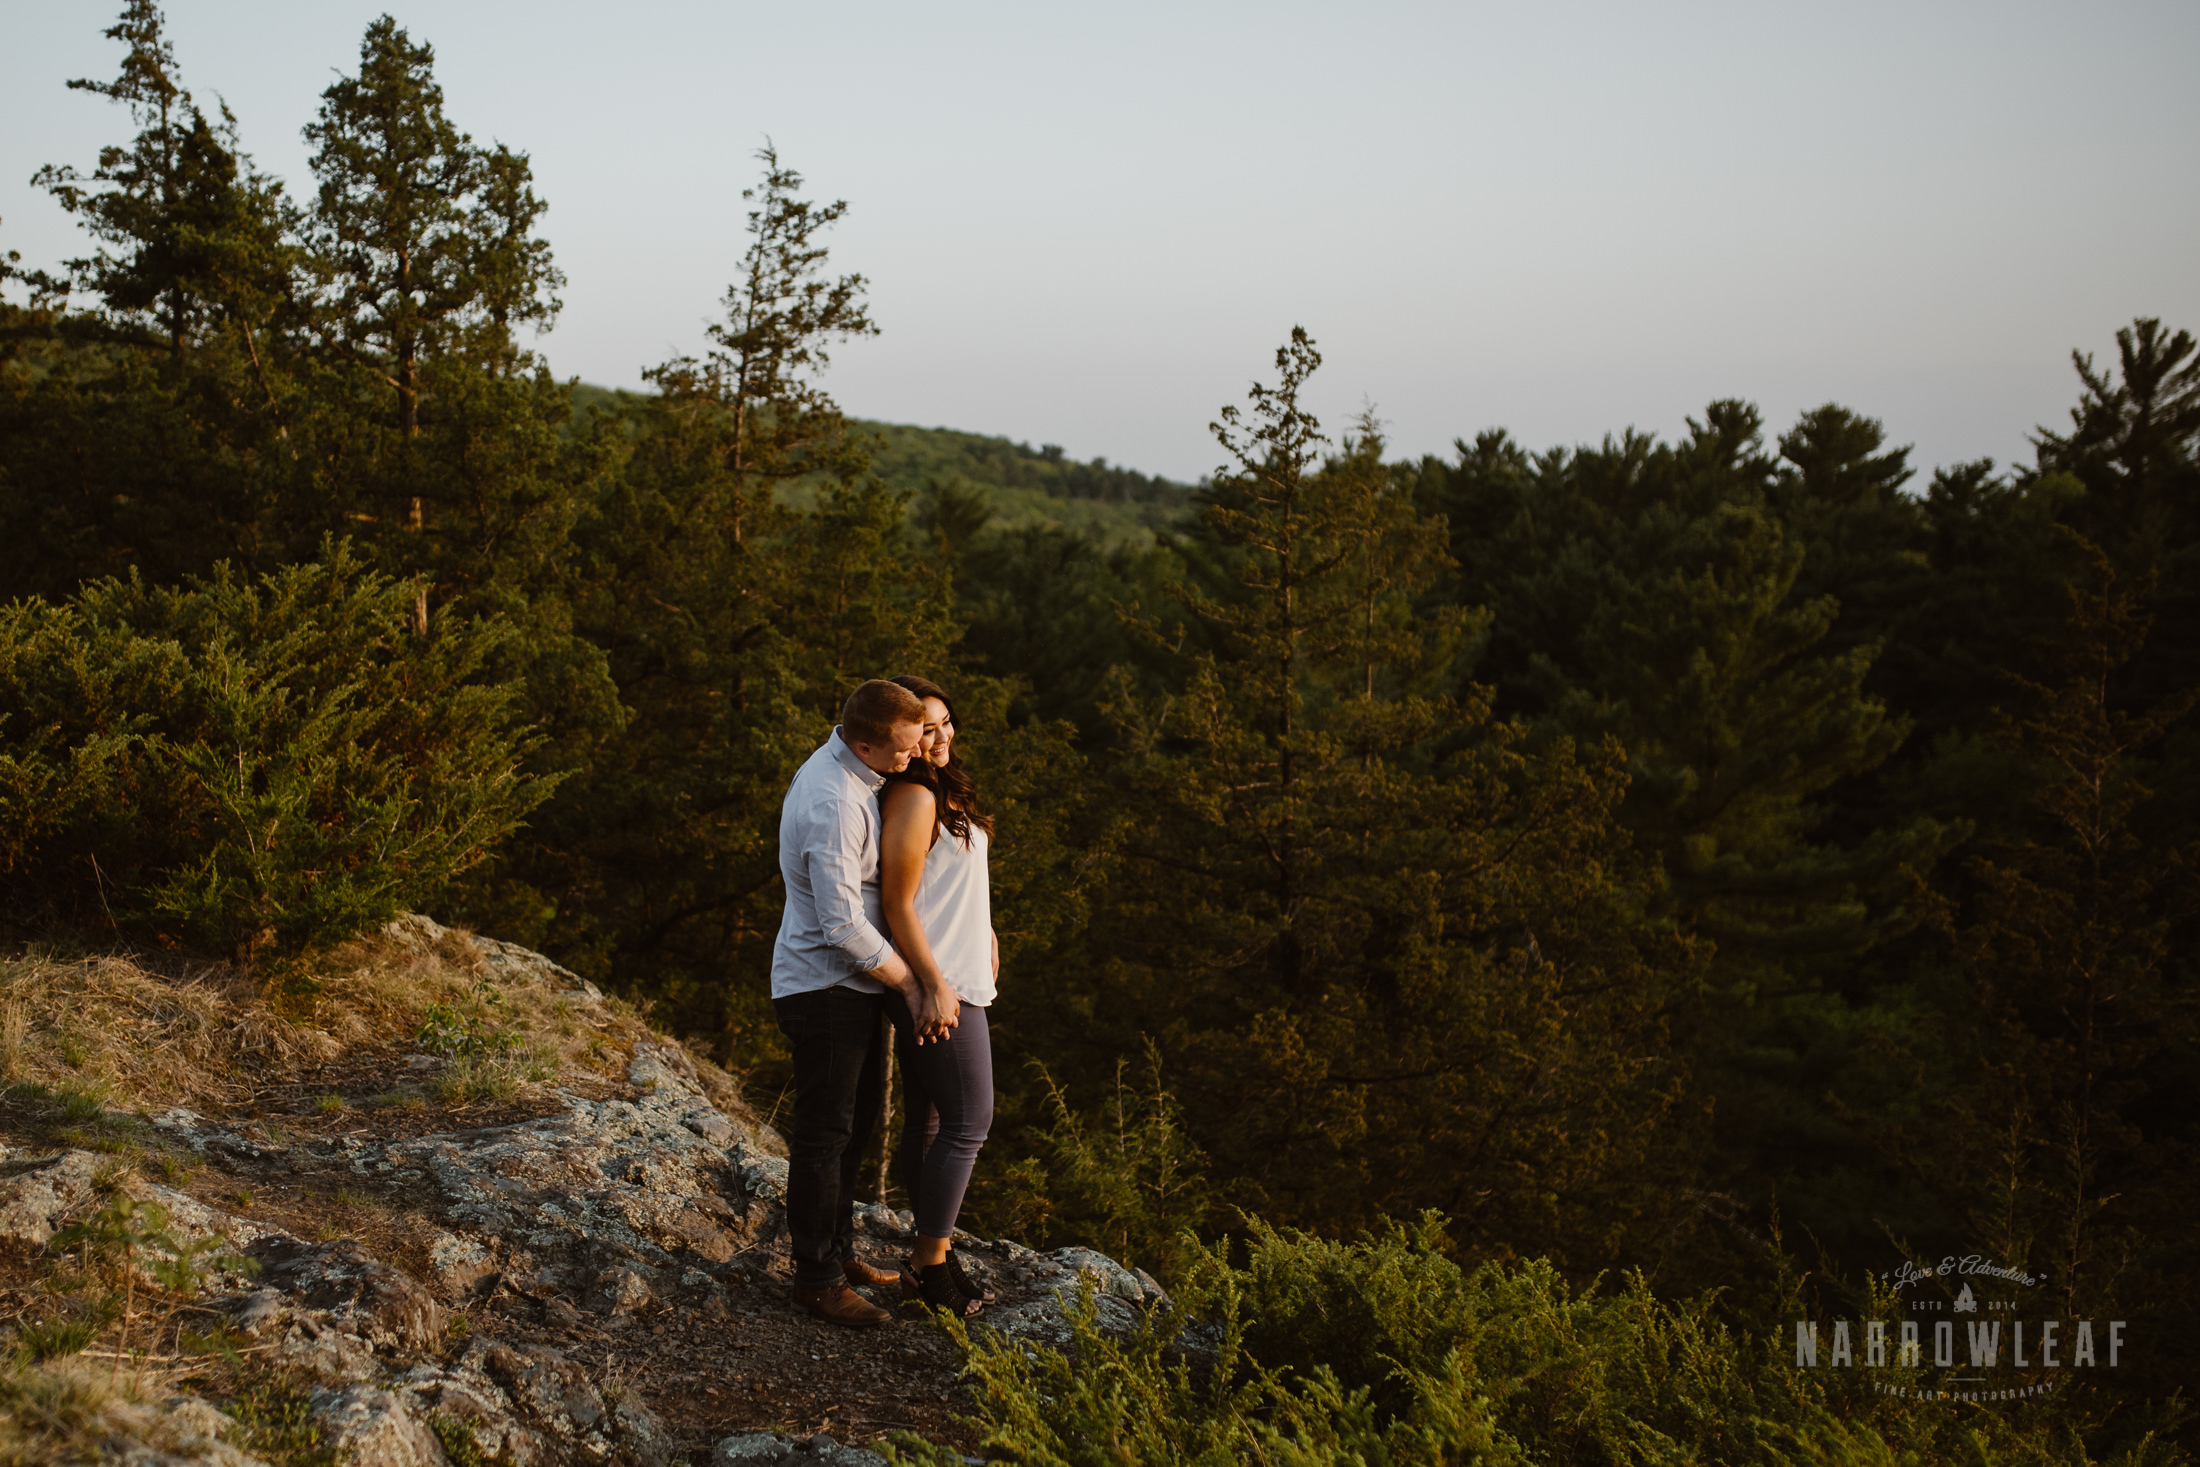 adventure-engagement-photographer-wisconsin-Narrowleaf_Love_and_Adventure_Photography-7782.jpg